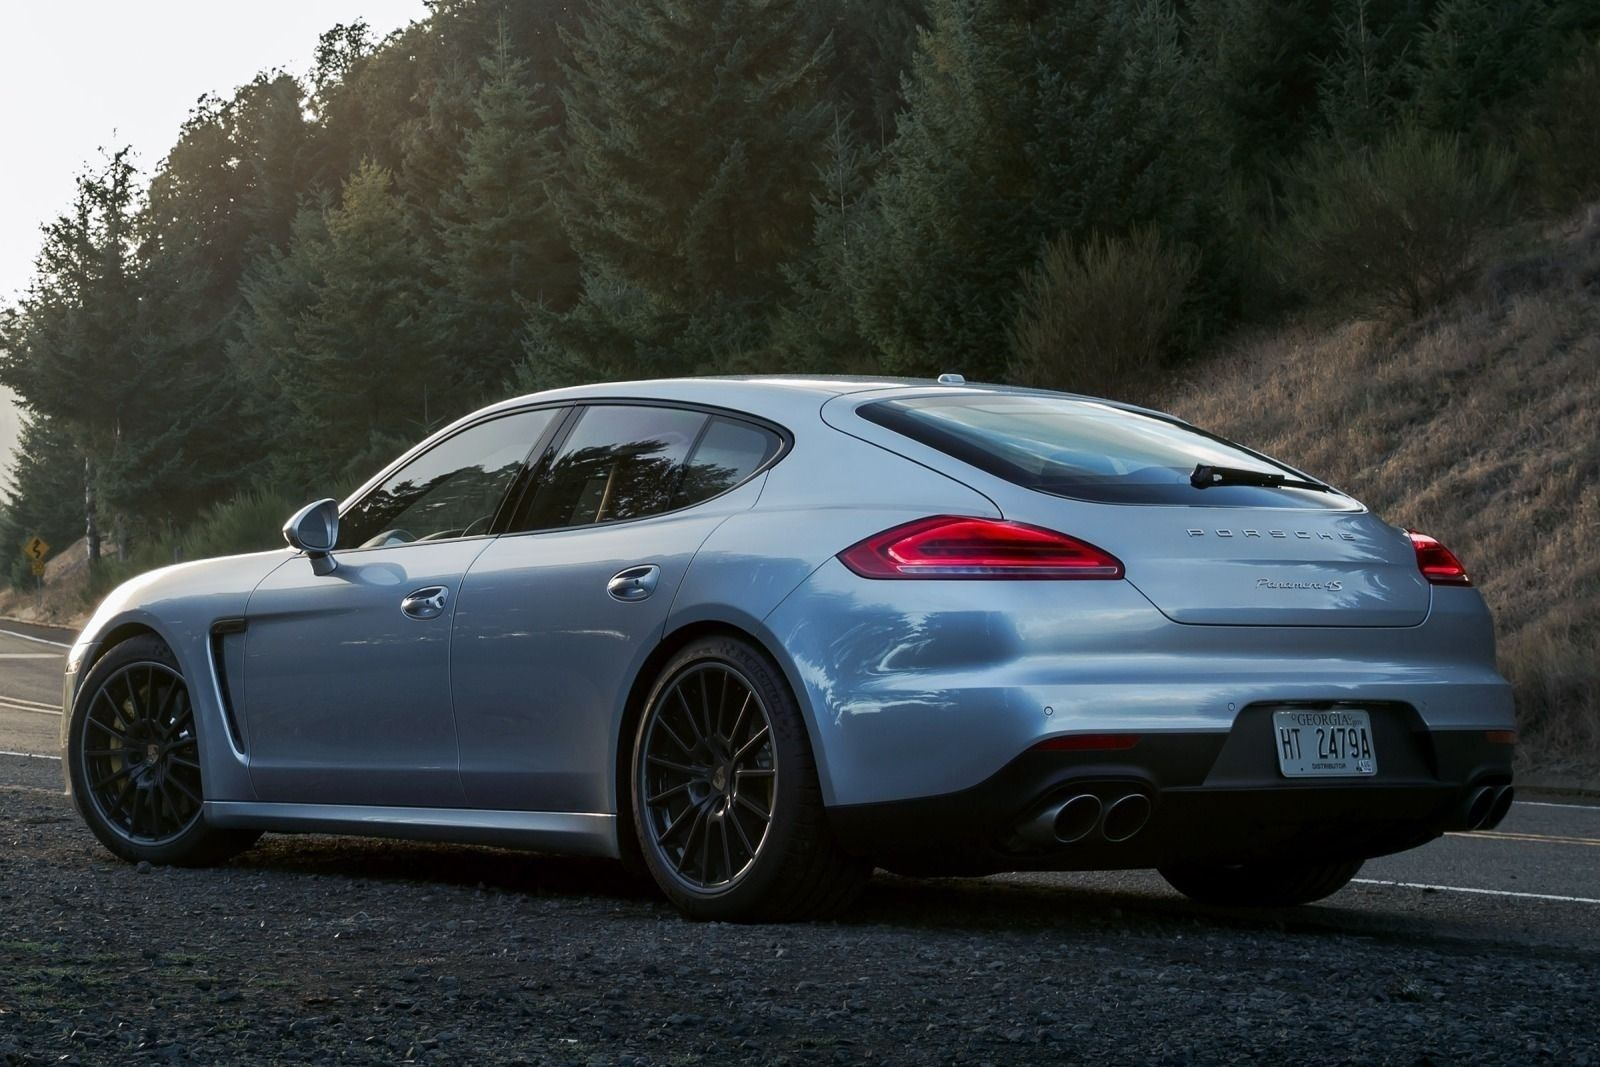 2019 Porsche Panamera Turbo S Redesign, Price and Review